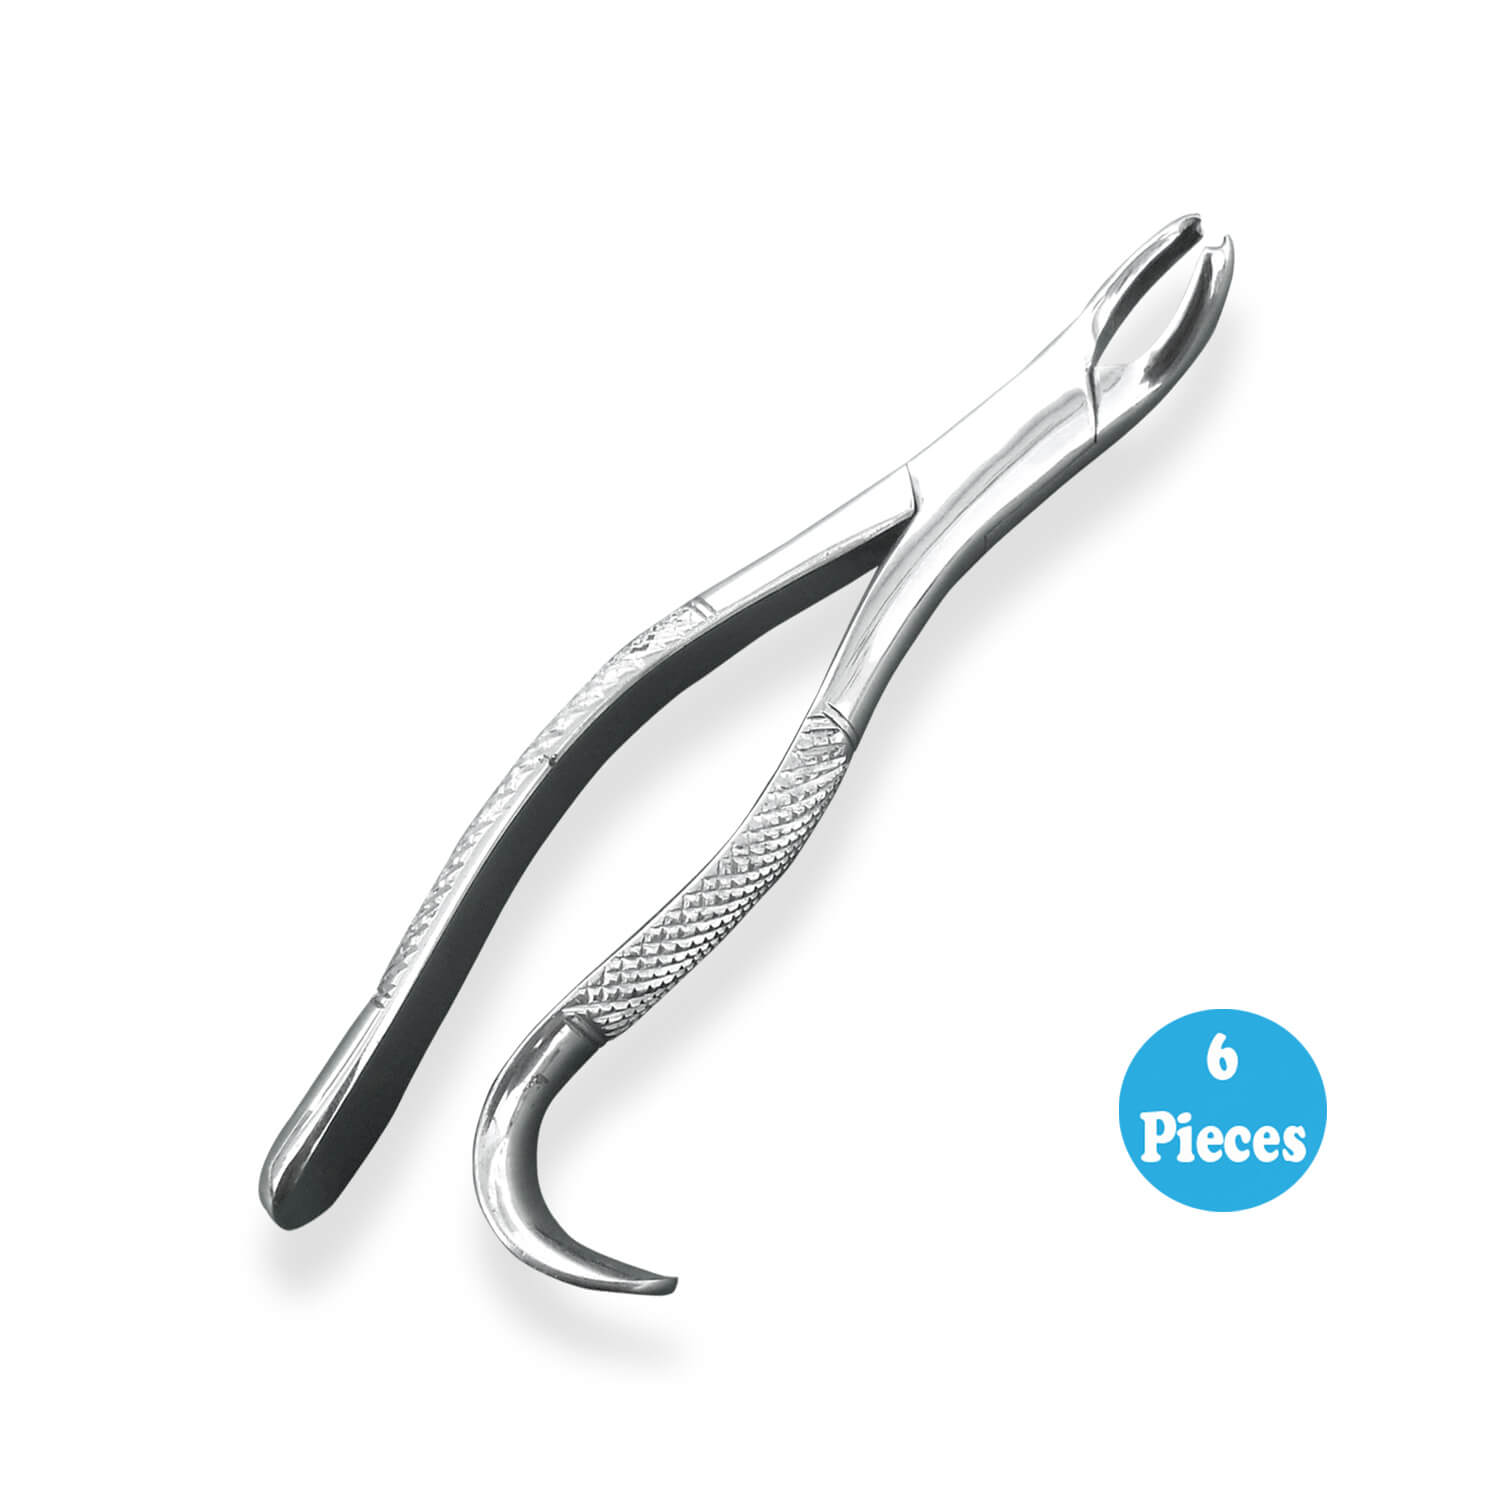 6 Dental Tooth Extracting forceps #287 With Serrated Jaws